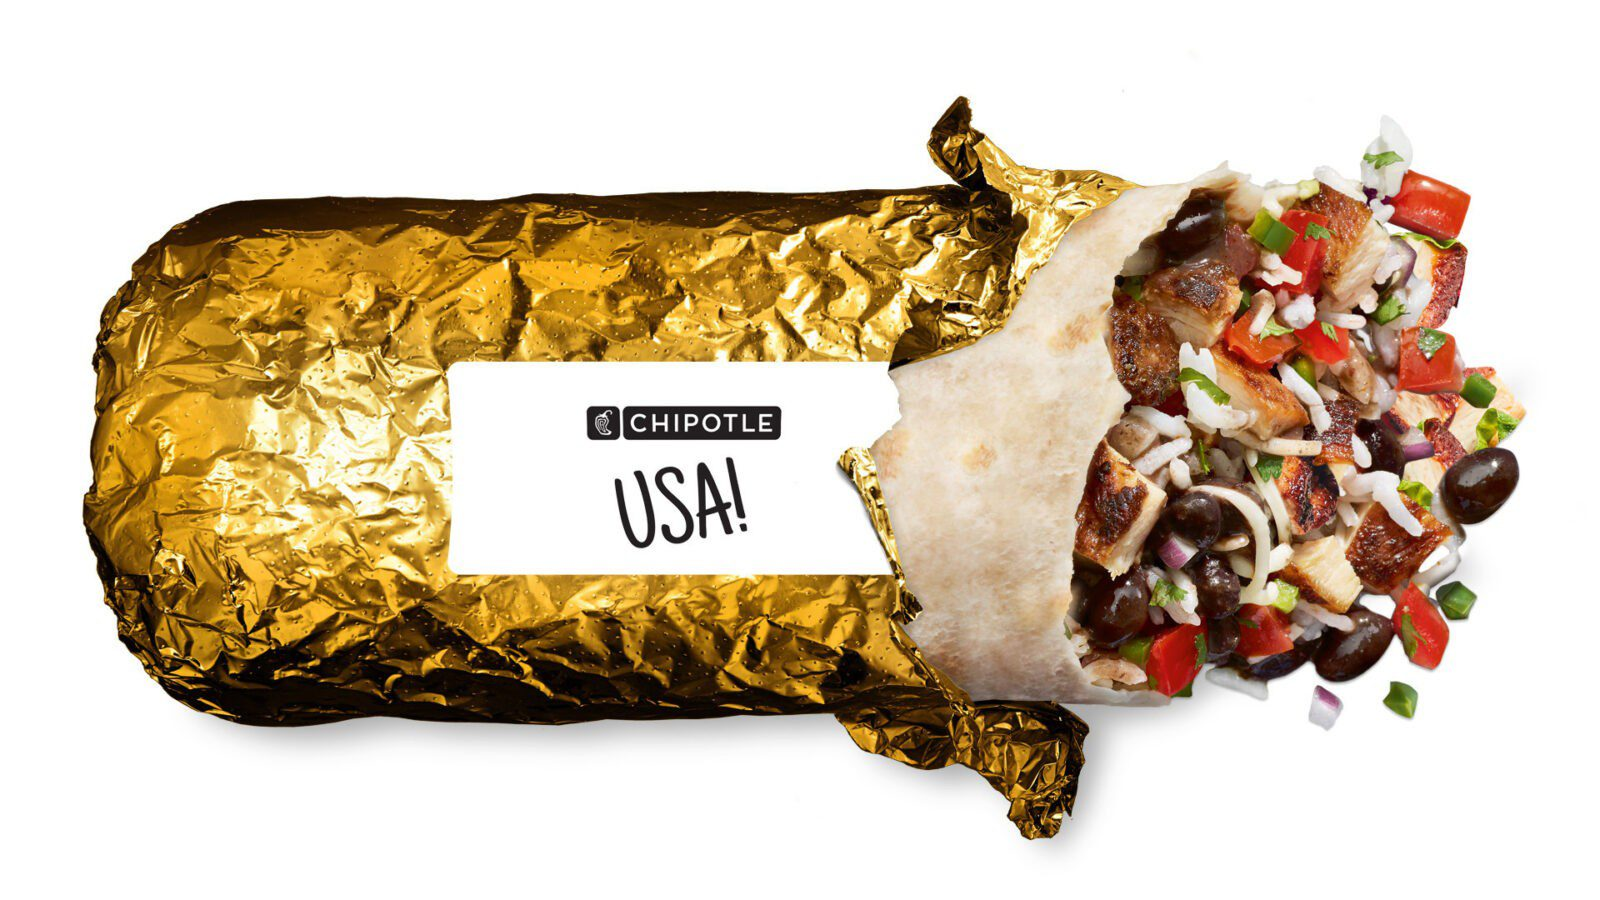 Chipotle Rolls Out Gold Foil - Celebrate American Athletes In Tokyo